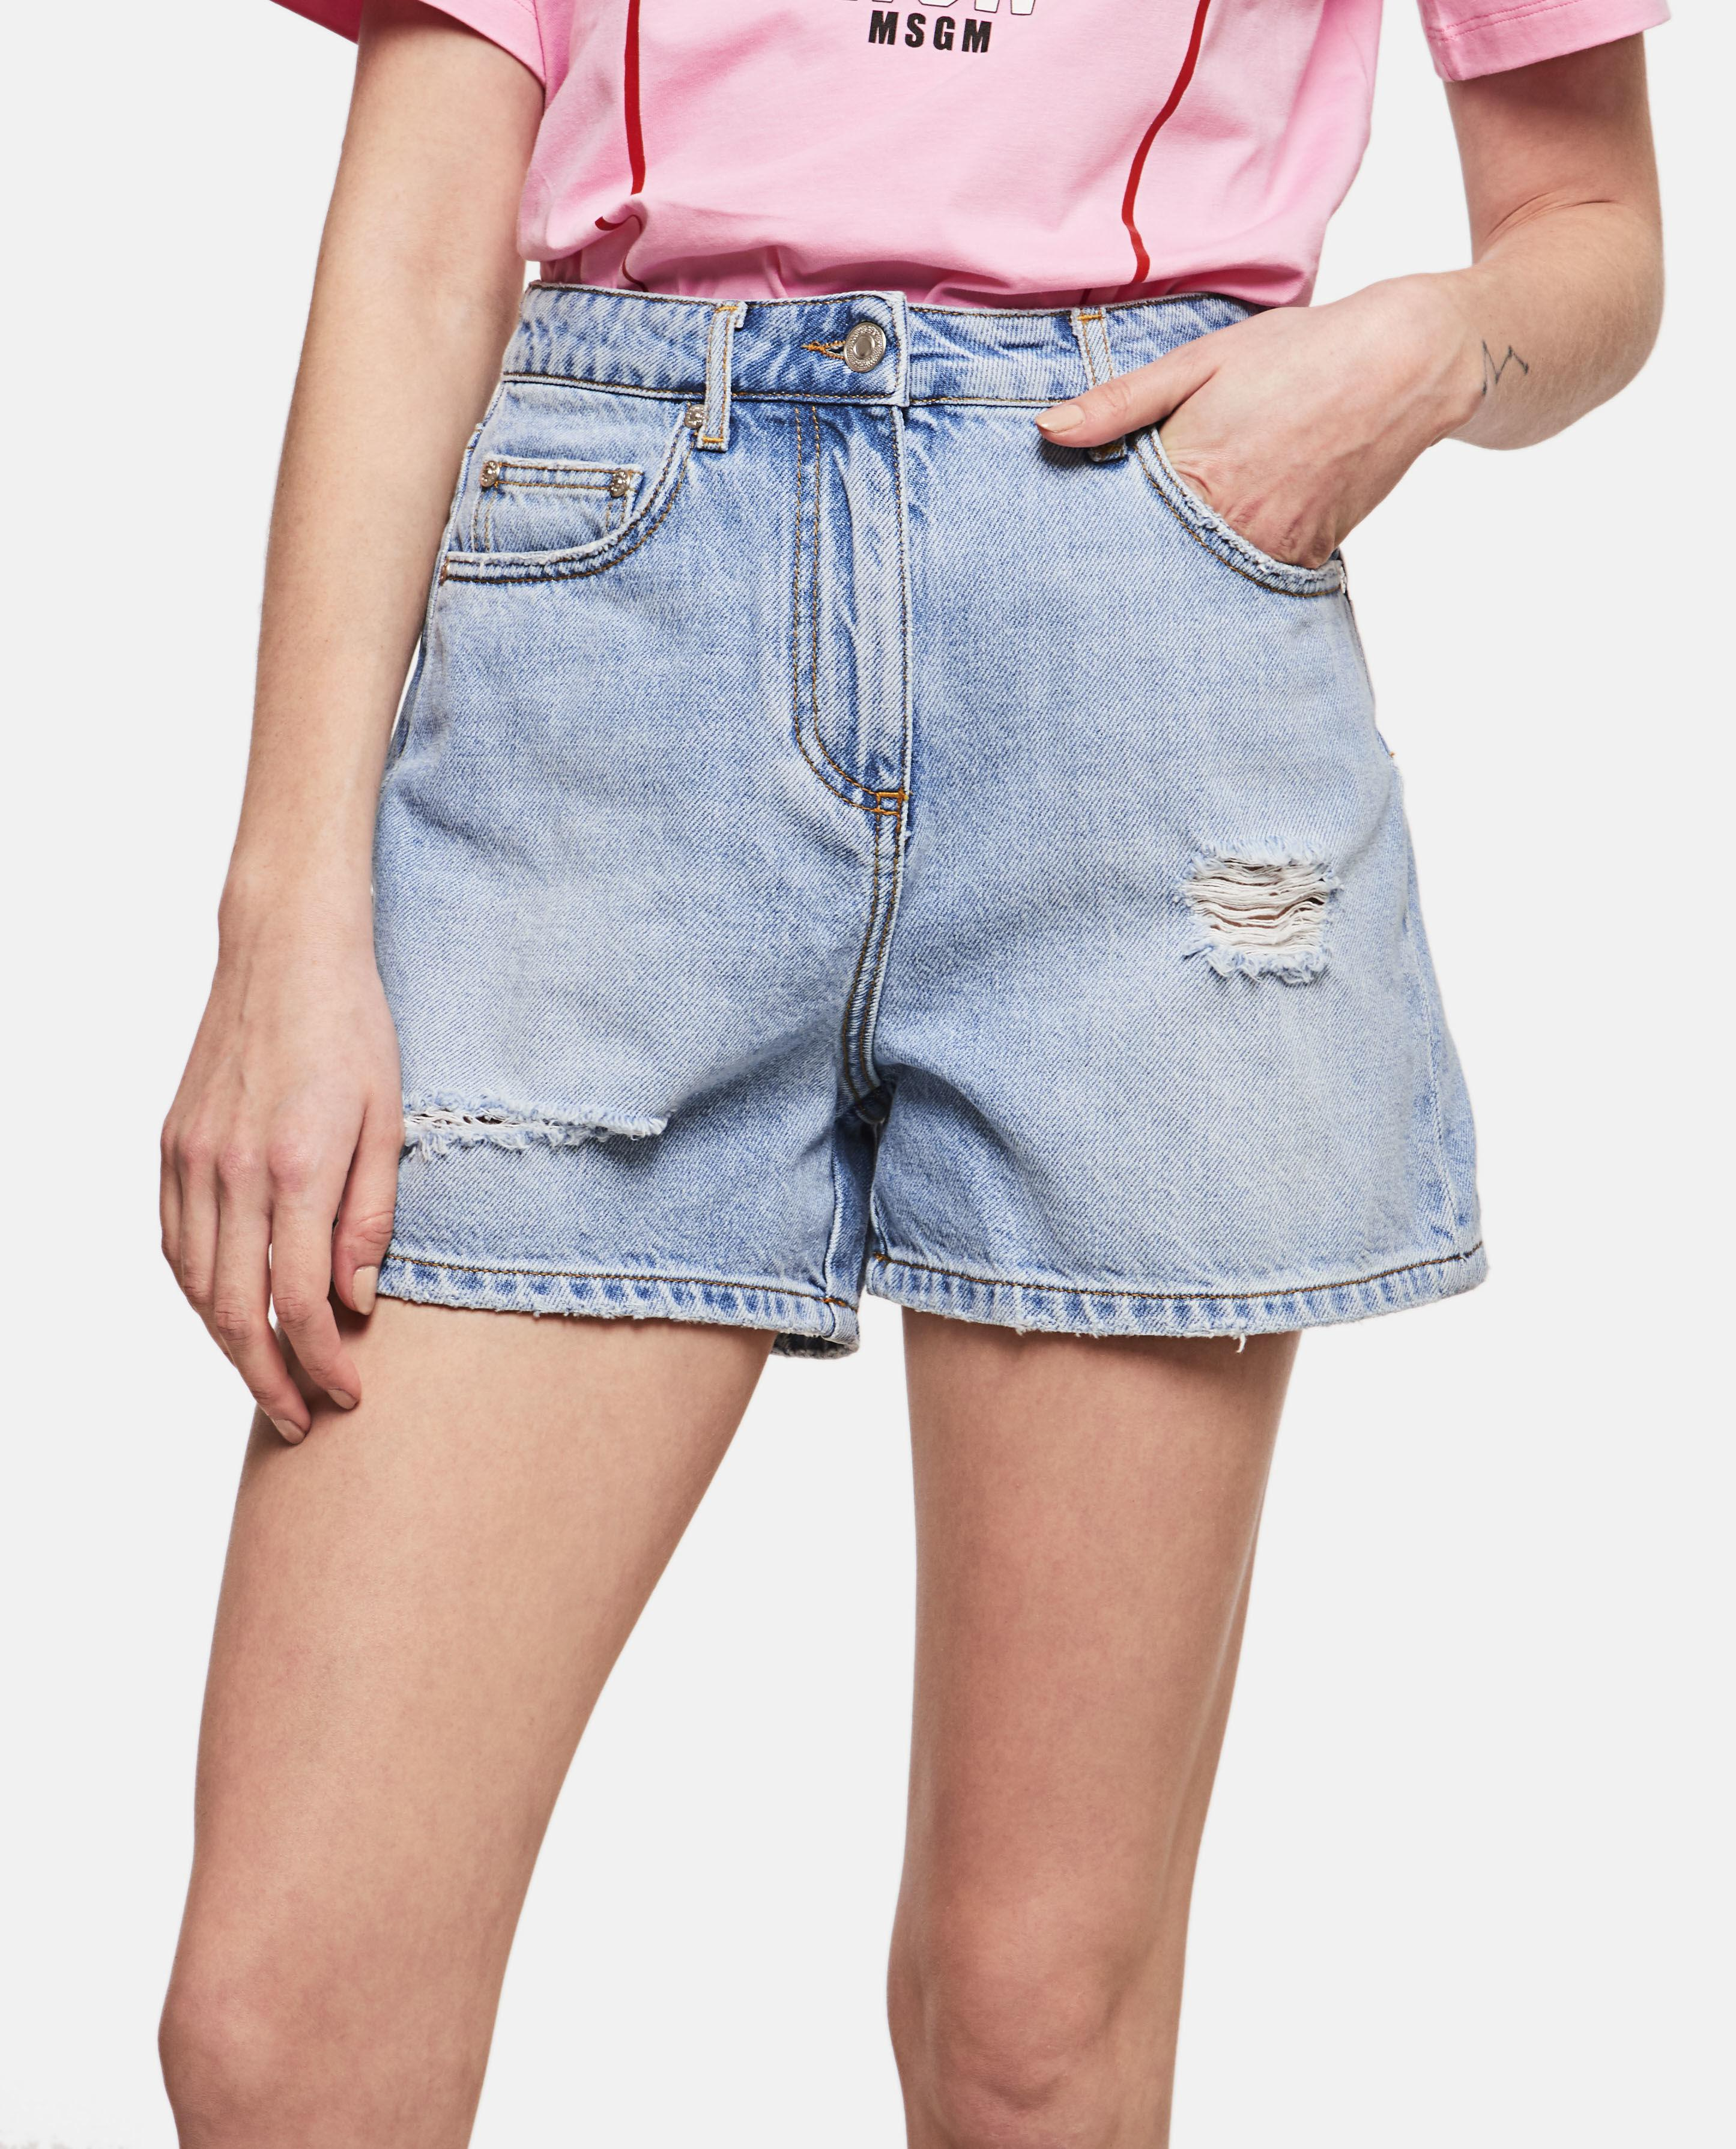 cb2c36c6fa MSGM - Blue Denim Short Shorts - Lyst. View fullscreen